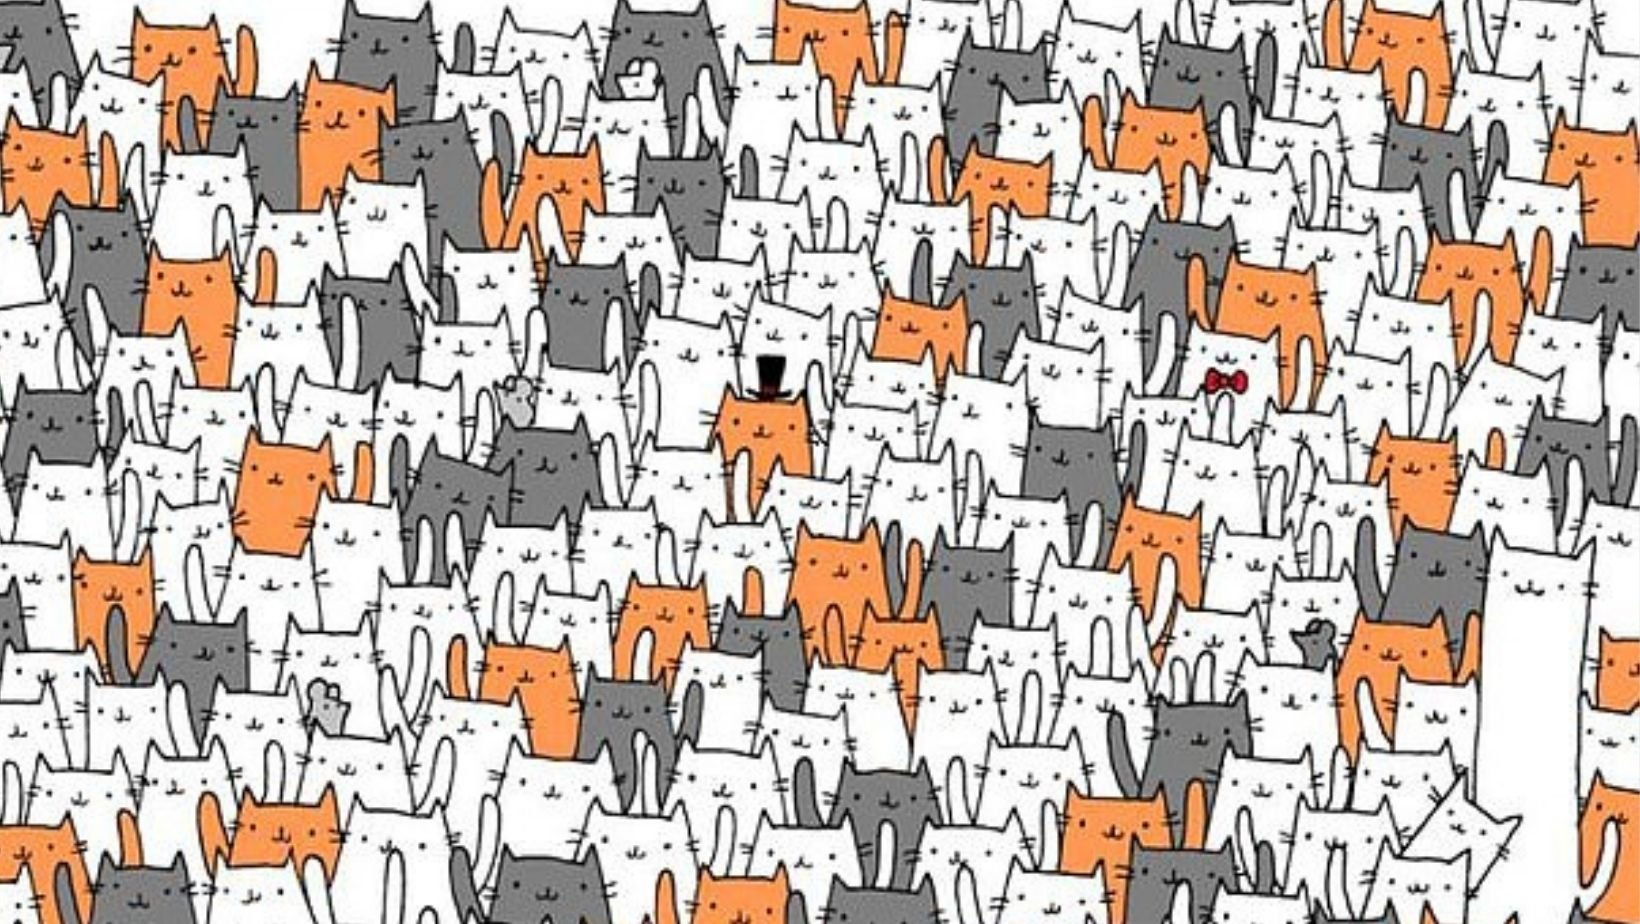 small joys thumbnail 3 3.jpg?resize=412,232 - Can You Find The Hidden Rabbit In Less Than 60 Seconds?